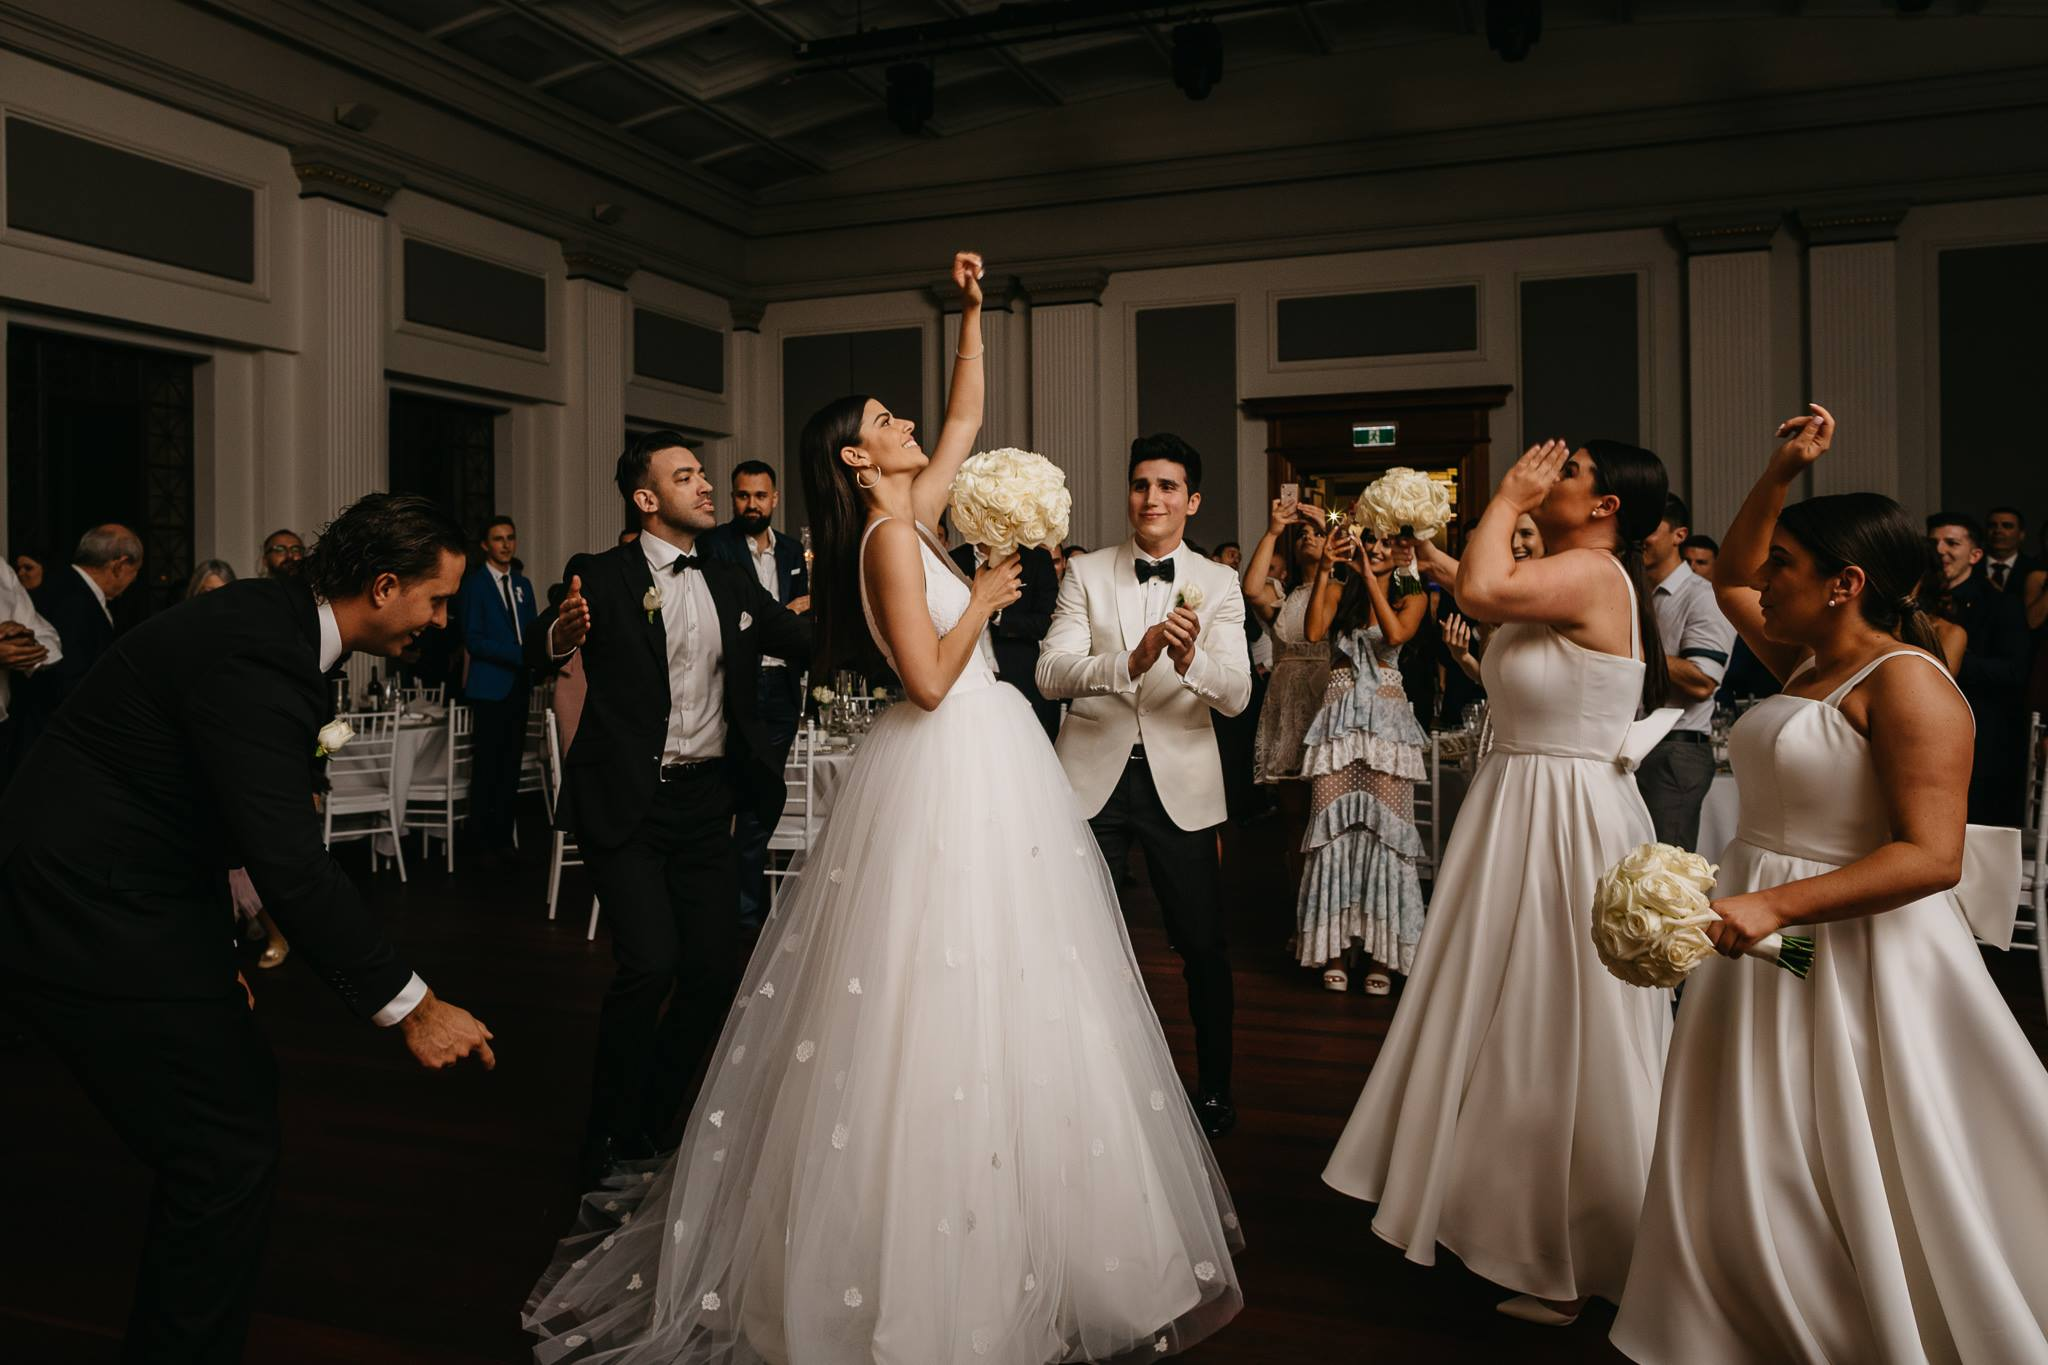 Choose a Photography team you trust and like, so you will feel relaxed around them which allows you to instead immerse yourself in the wedding day's festivities.